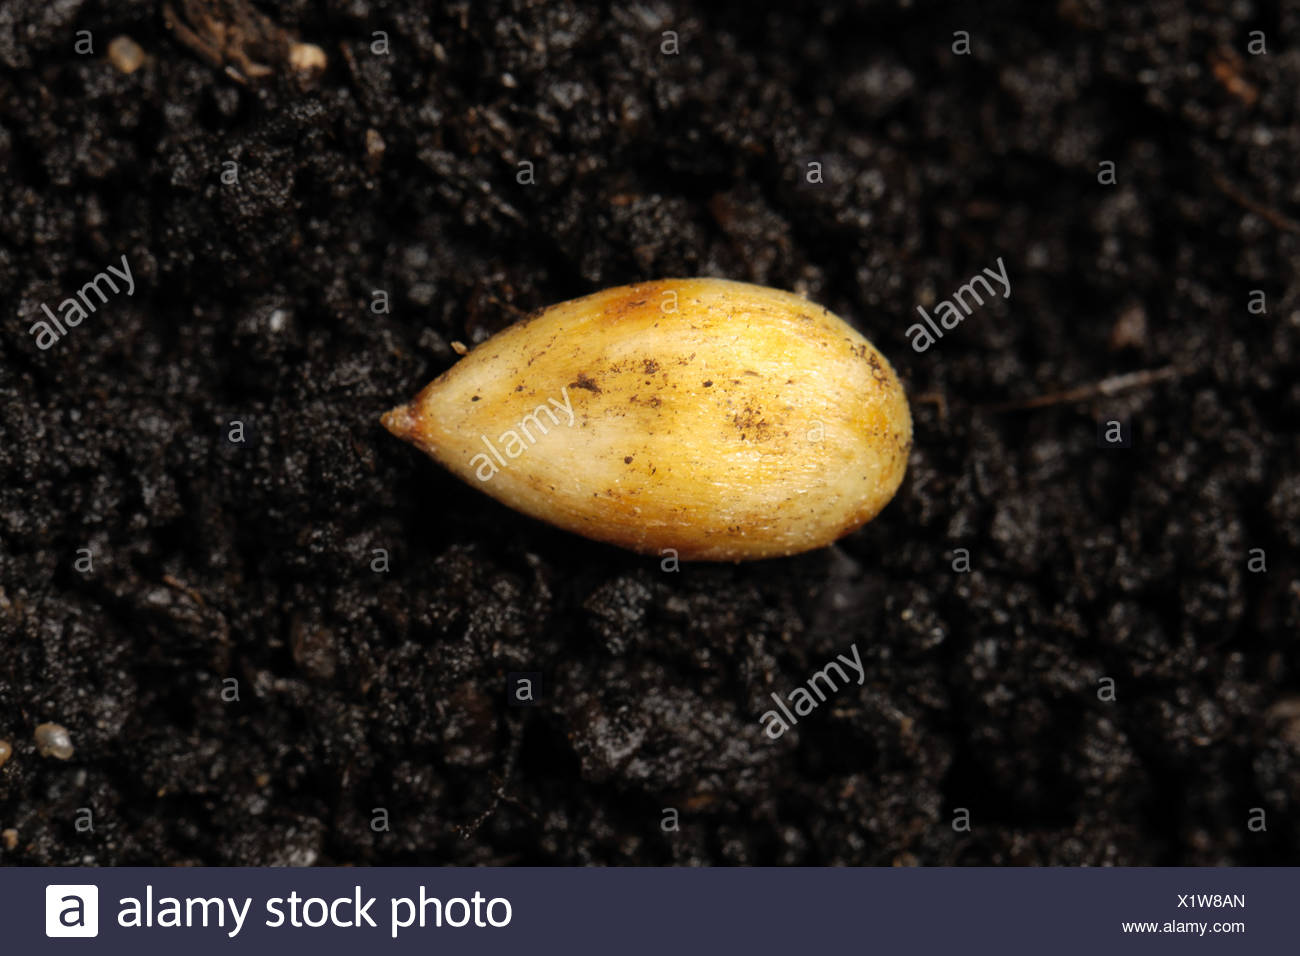 Discovery apple seed on a soil surface - Stock Image